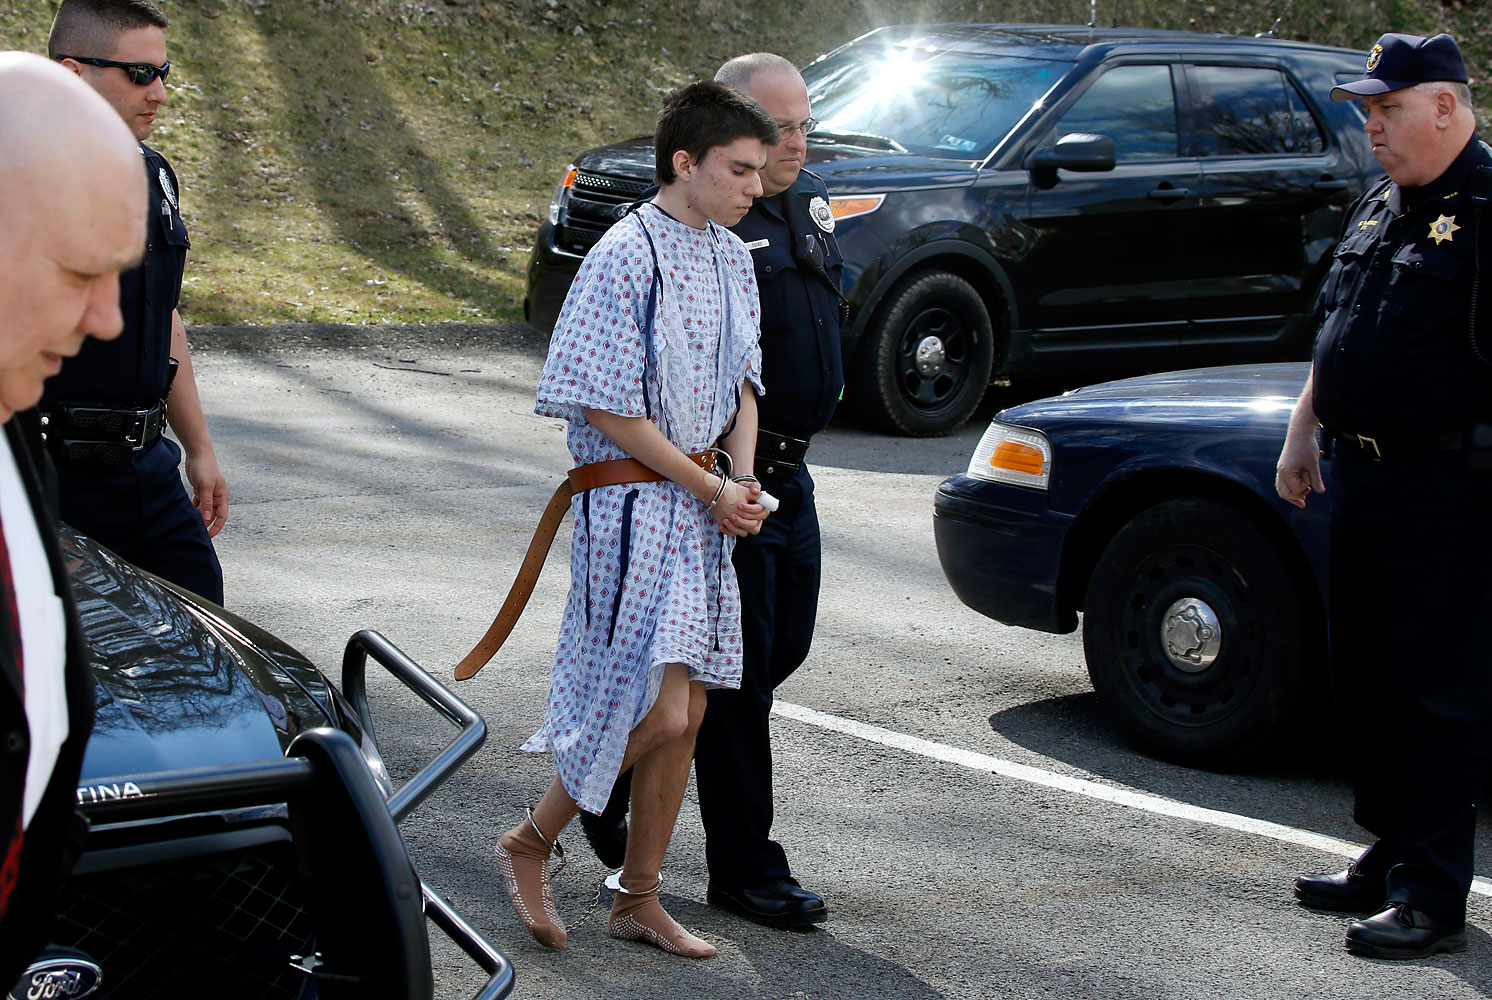 Alex Hribal escorted by police to a district magistrate to be arraigned, April 9, 2014, in Export, Pa.